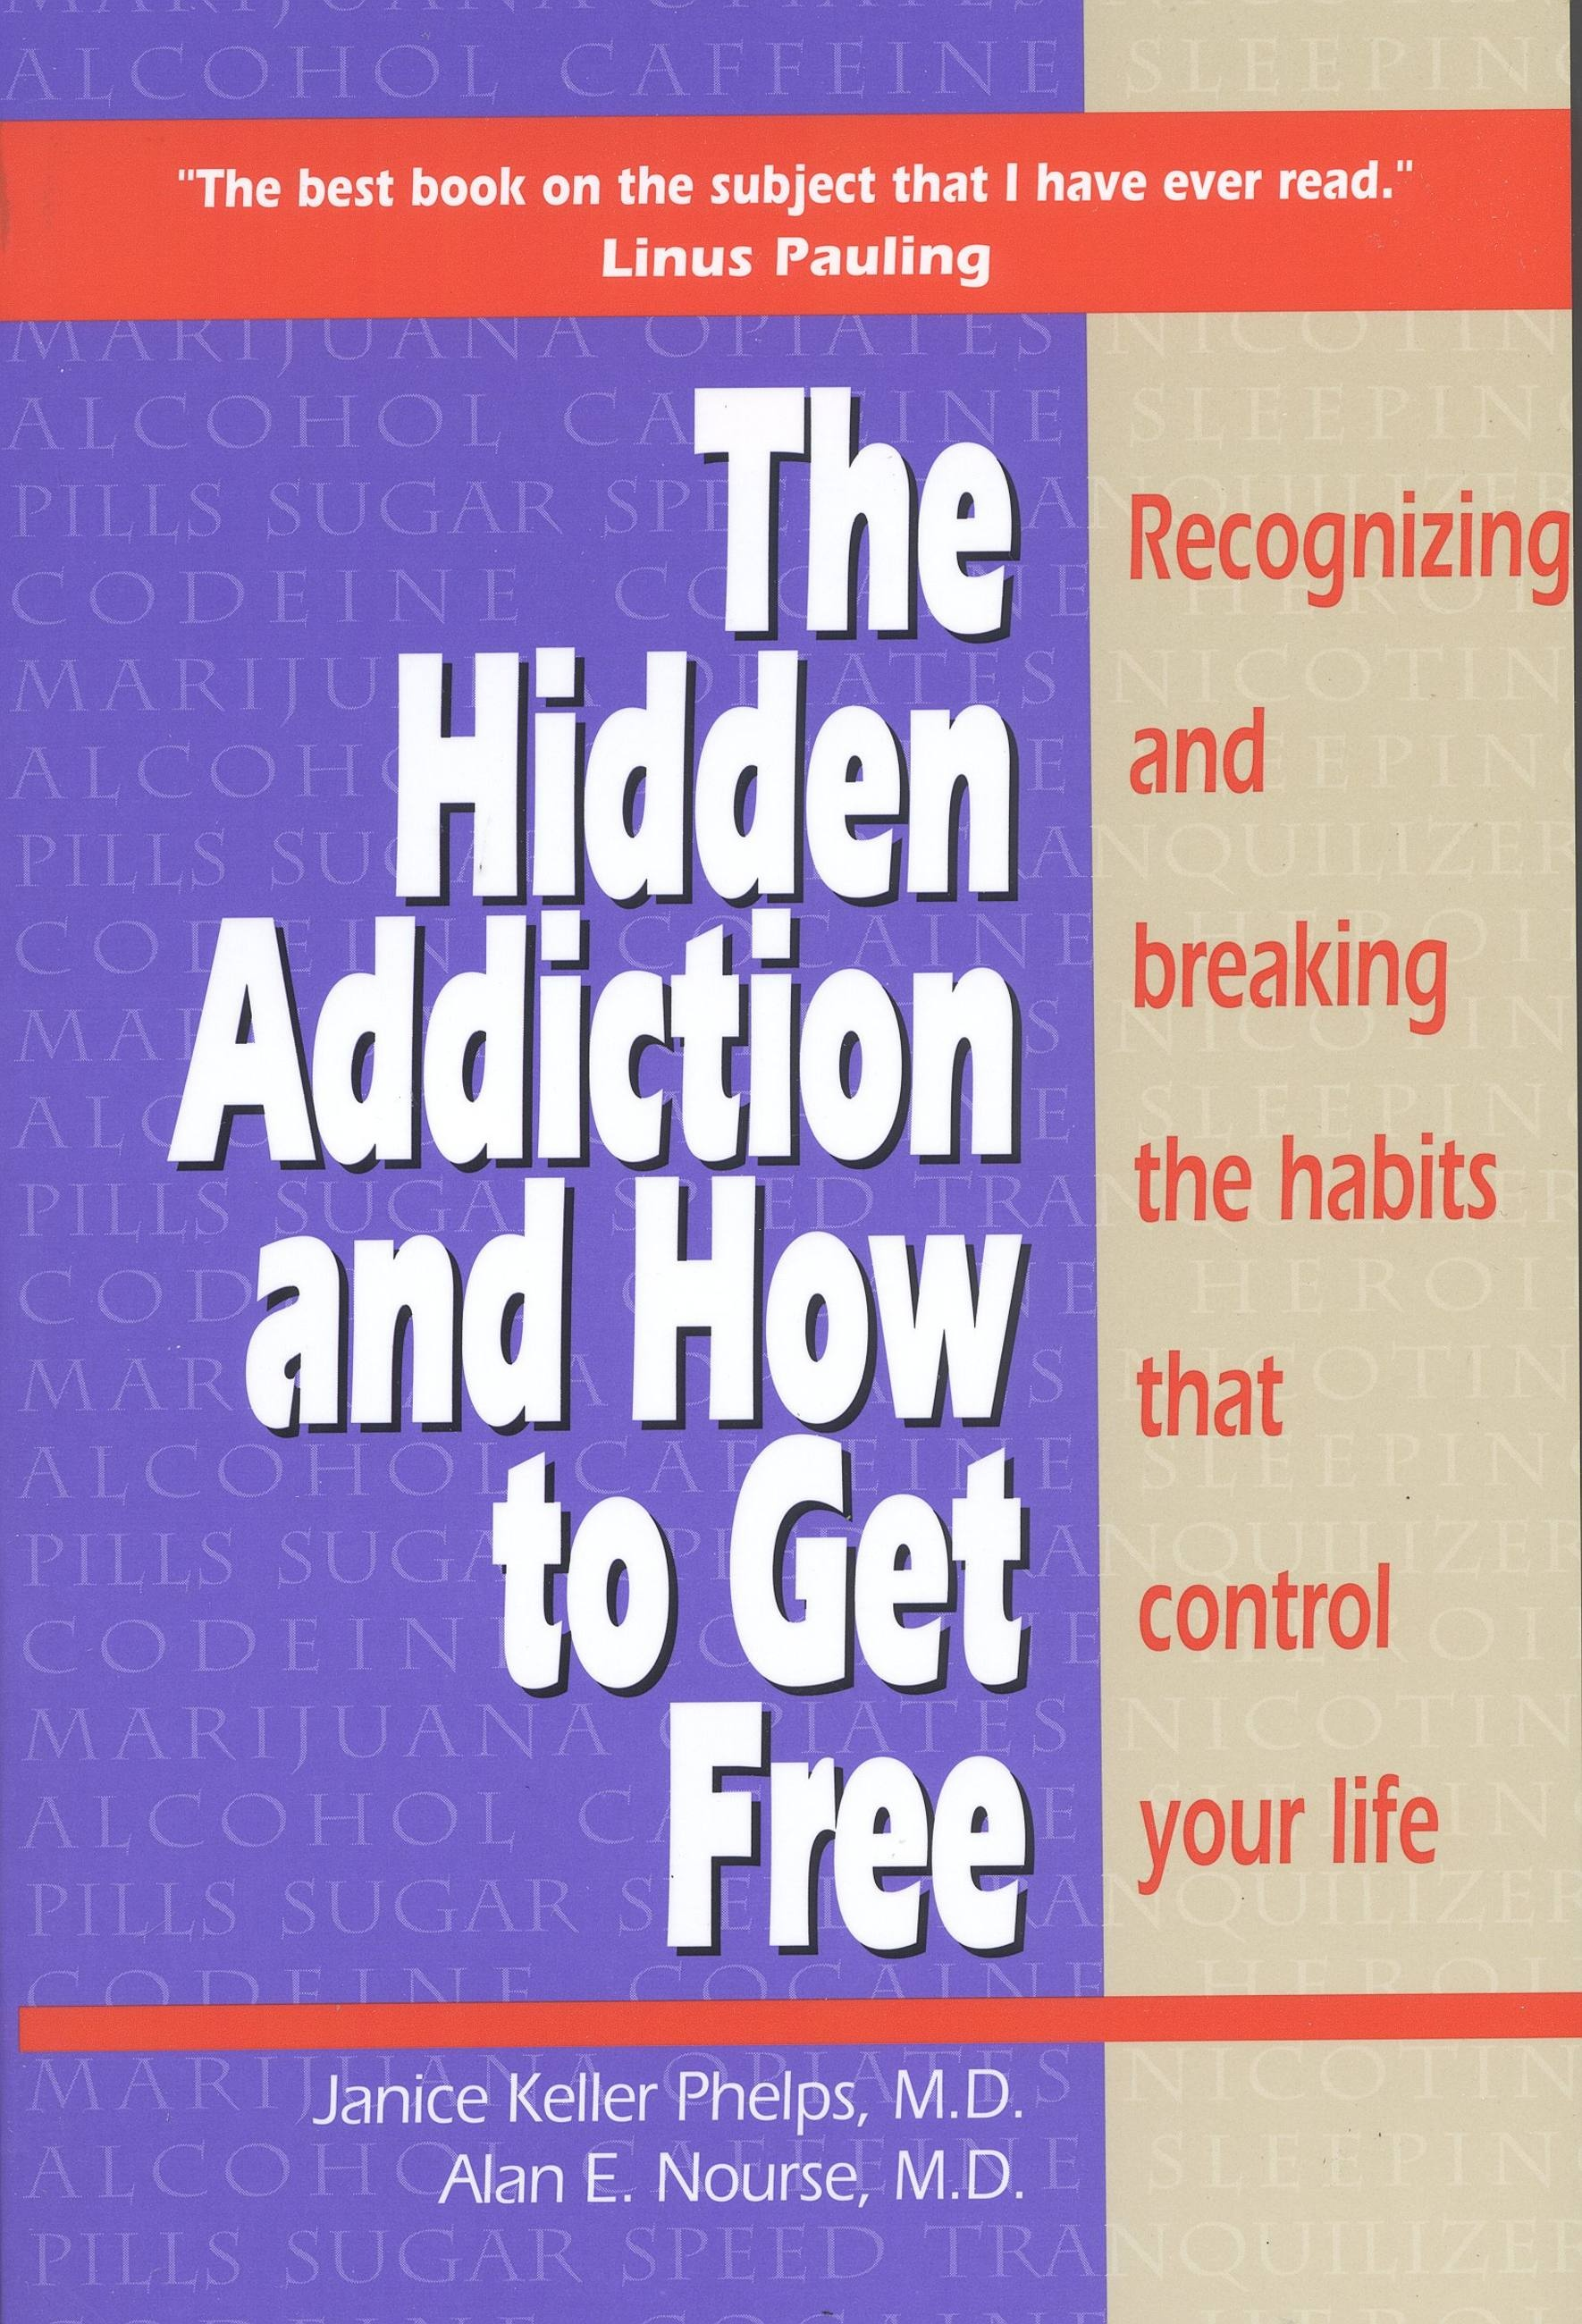 Hidden Addiction and How to Get Free, The - VolumeI